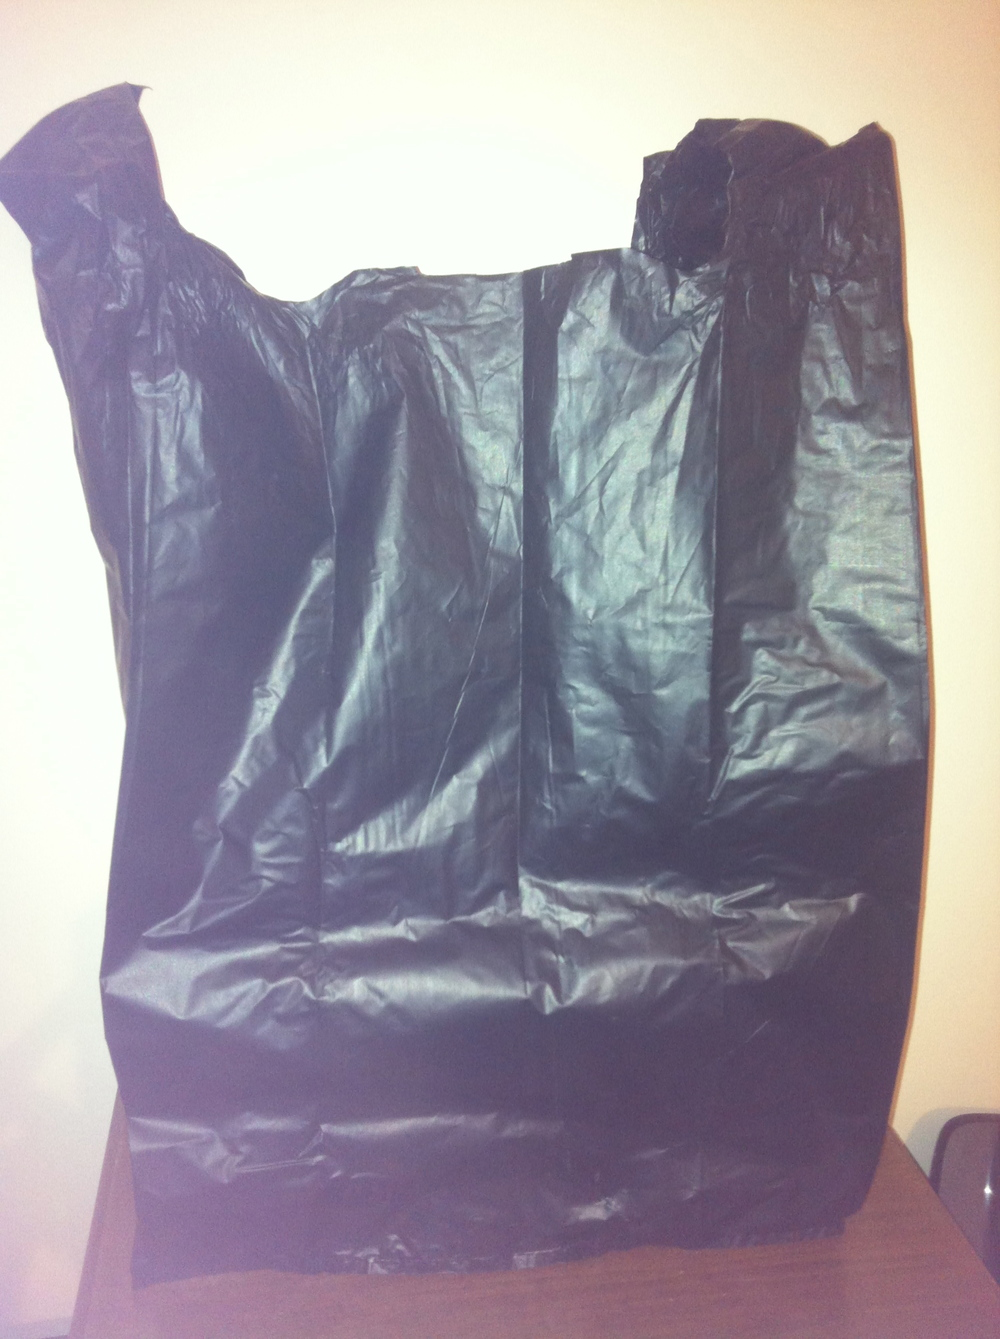 The infamous 'black bag'.